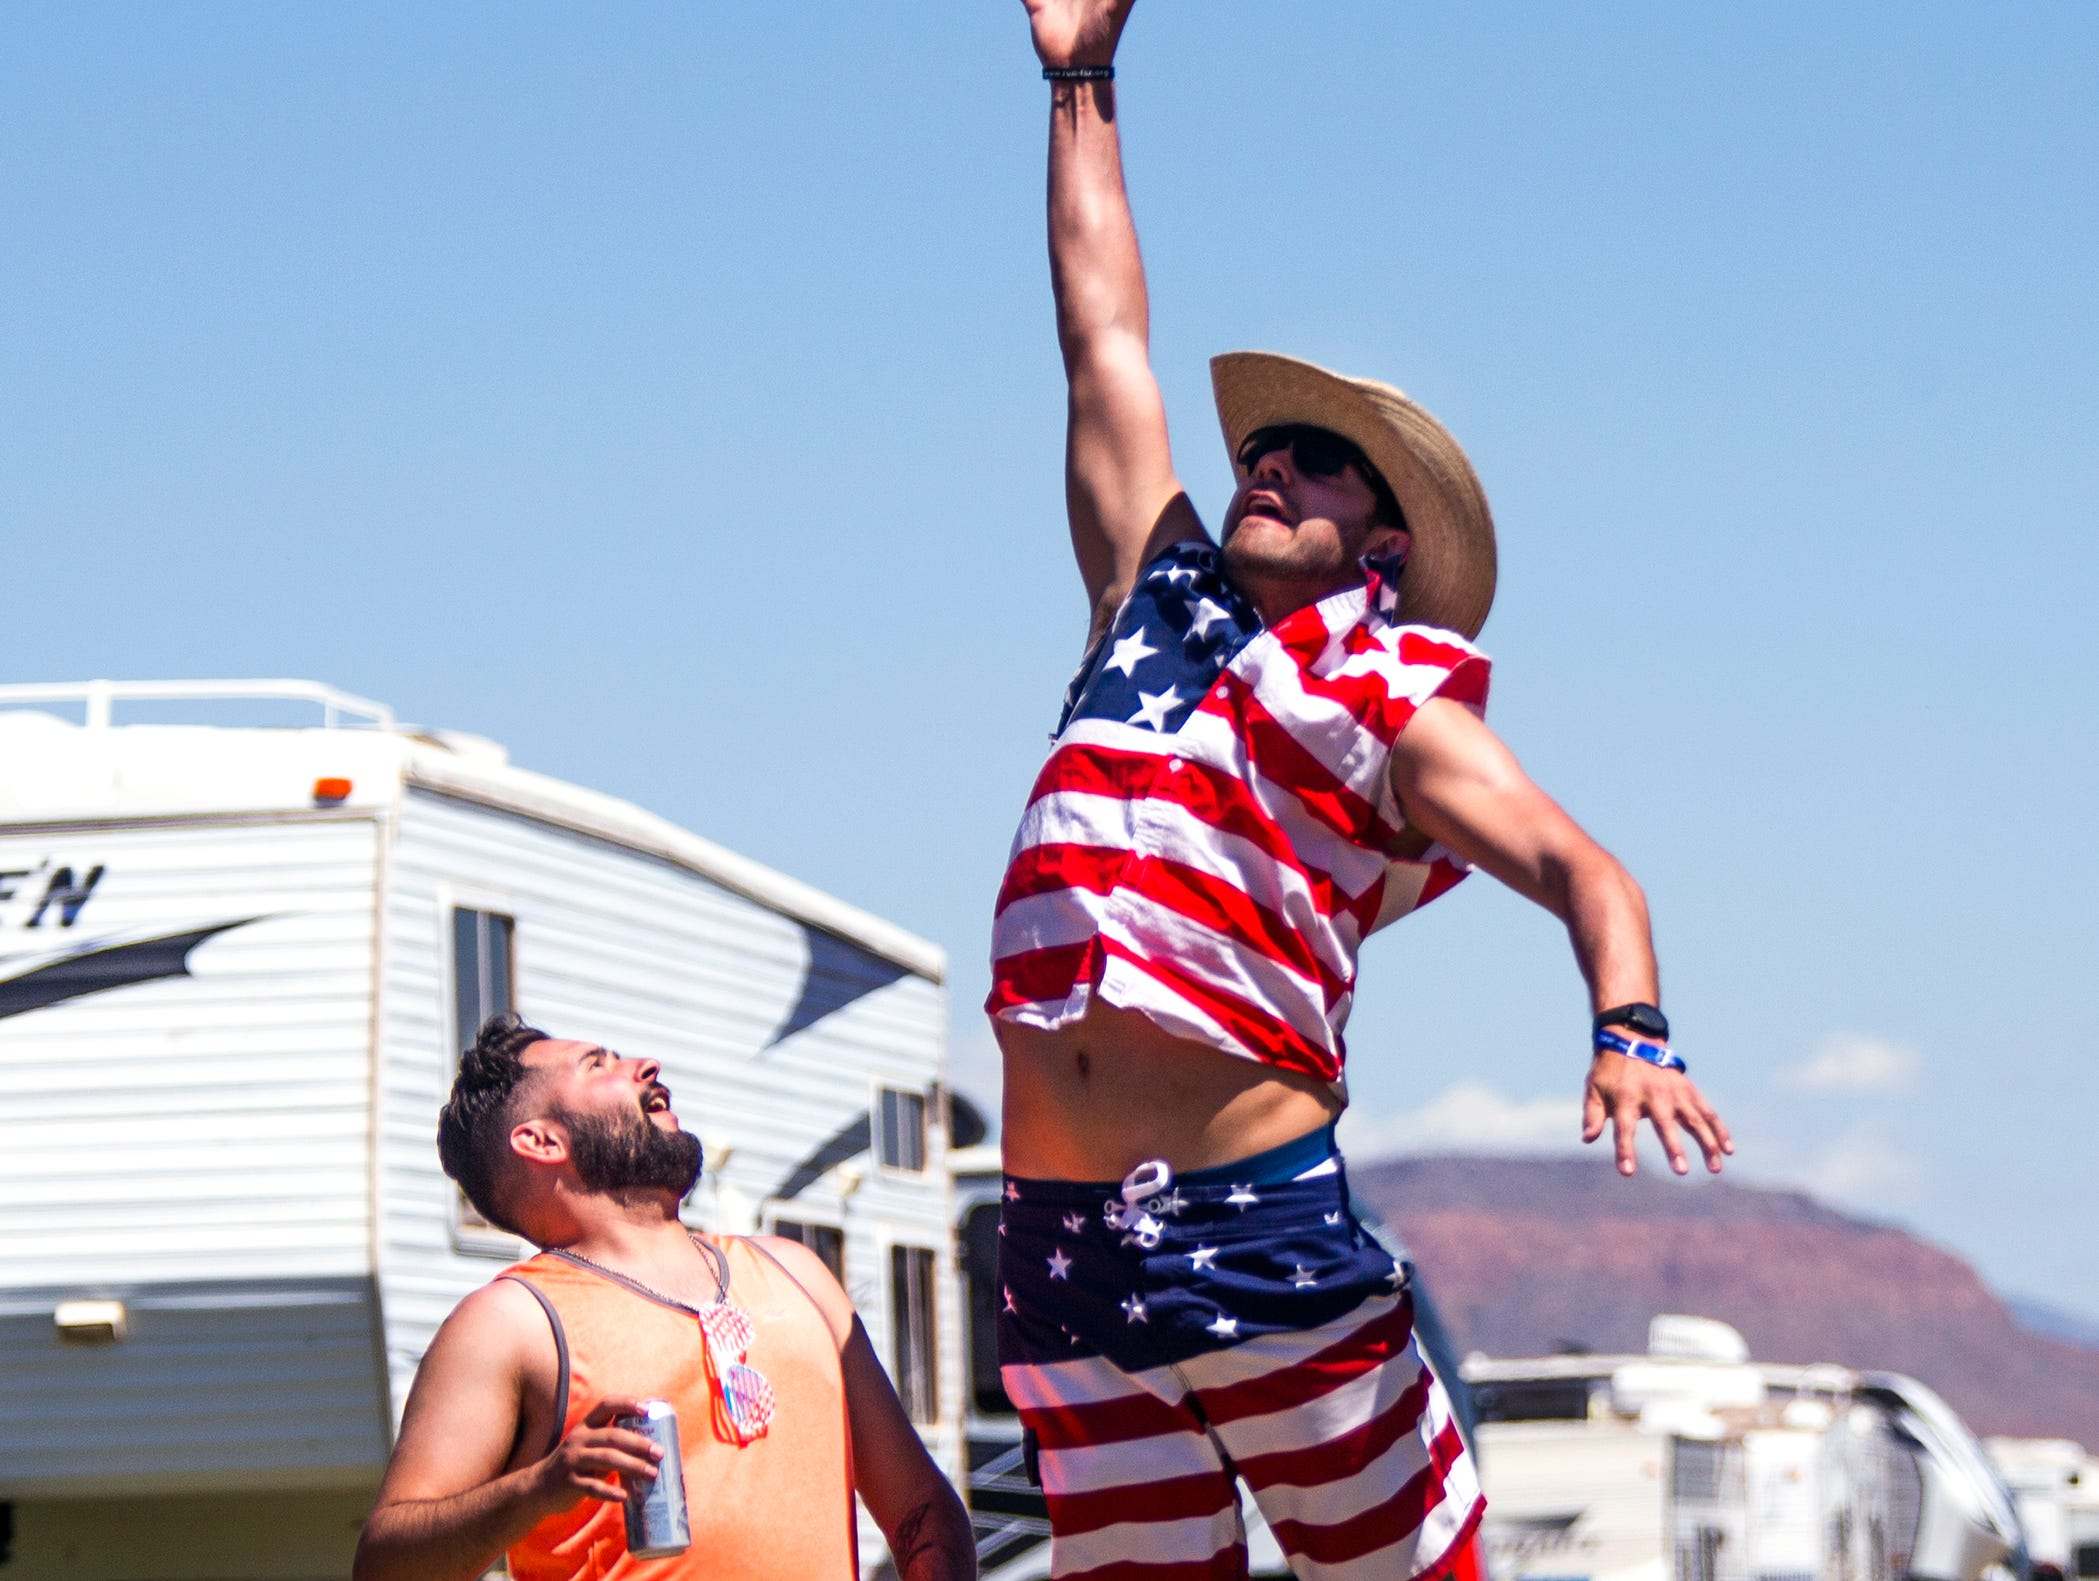 Fans toss the football around in camp at the Country Thunder Arizona 2019 music festival, Thursday, April 11, 2019.